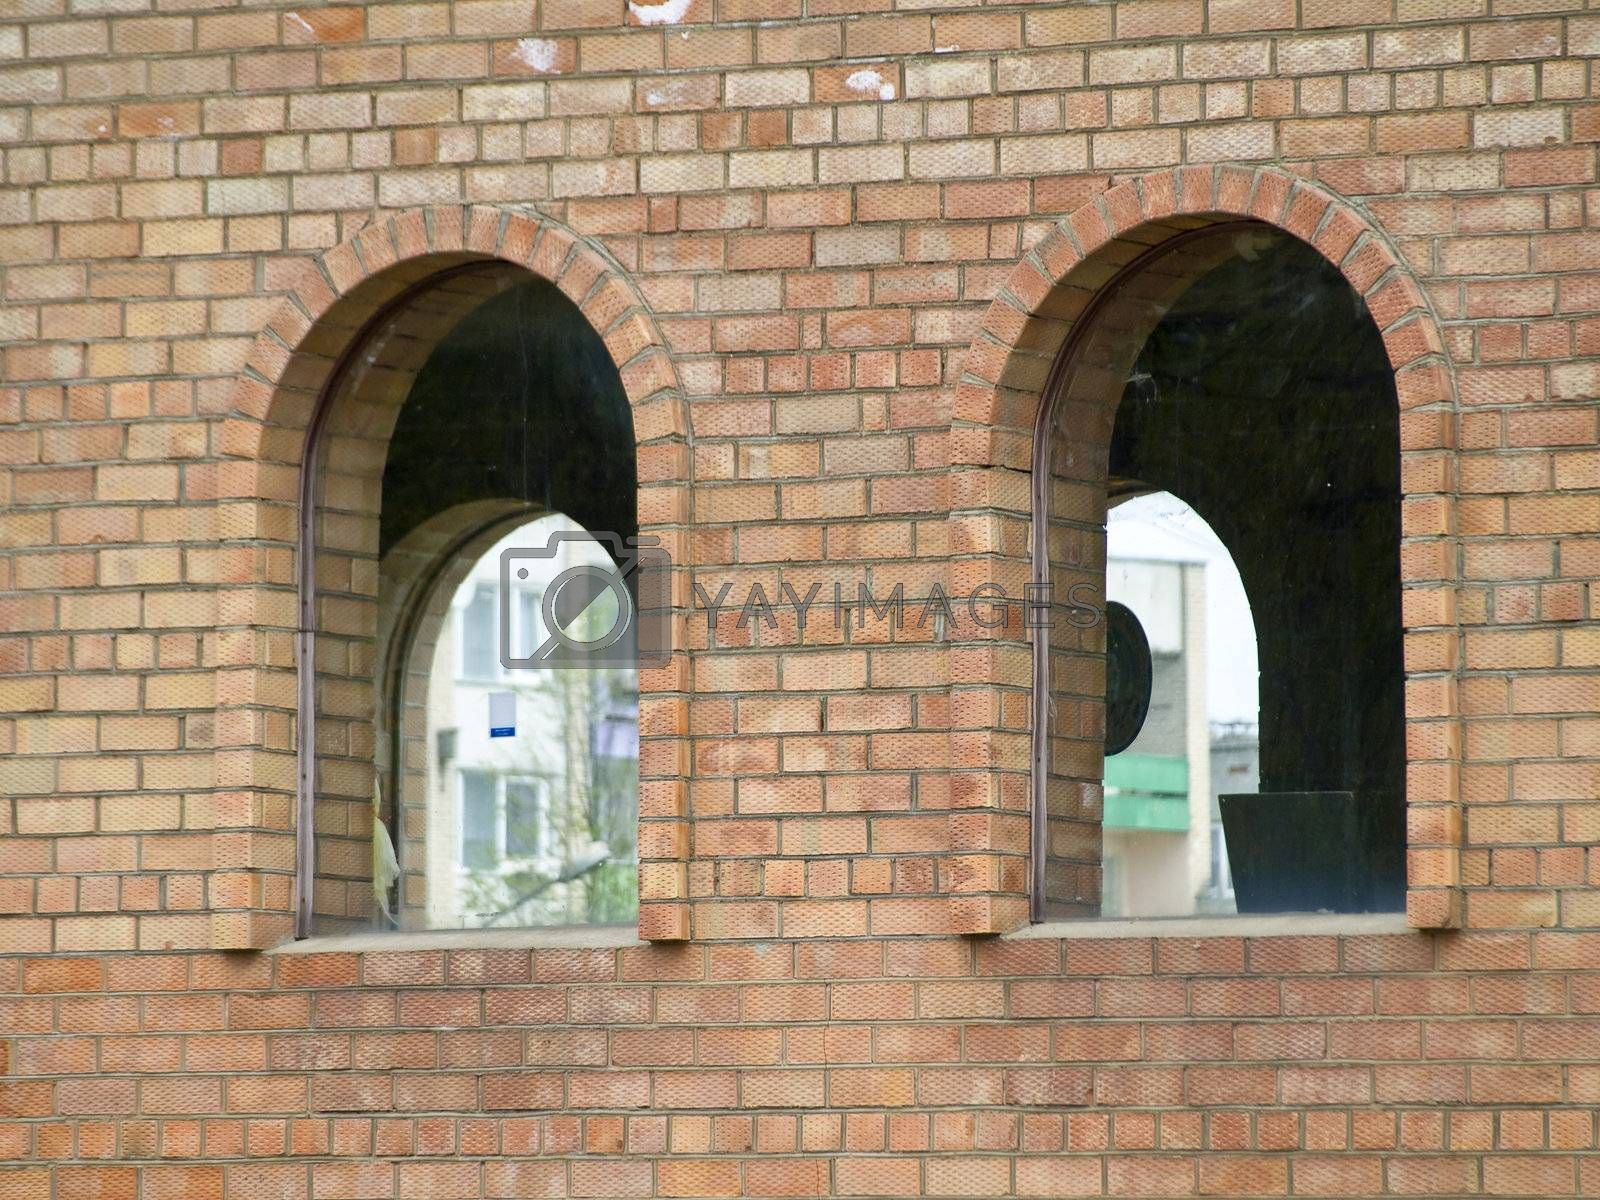 Two arcs at the bricks wall of the modern building